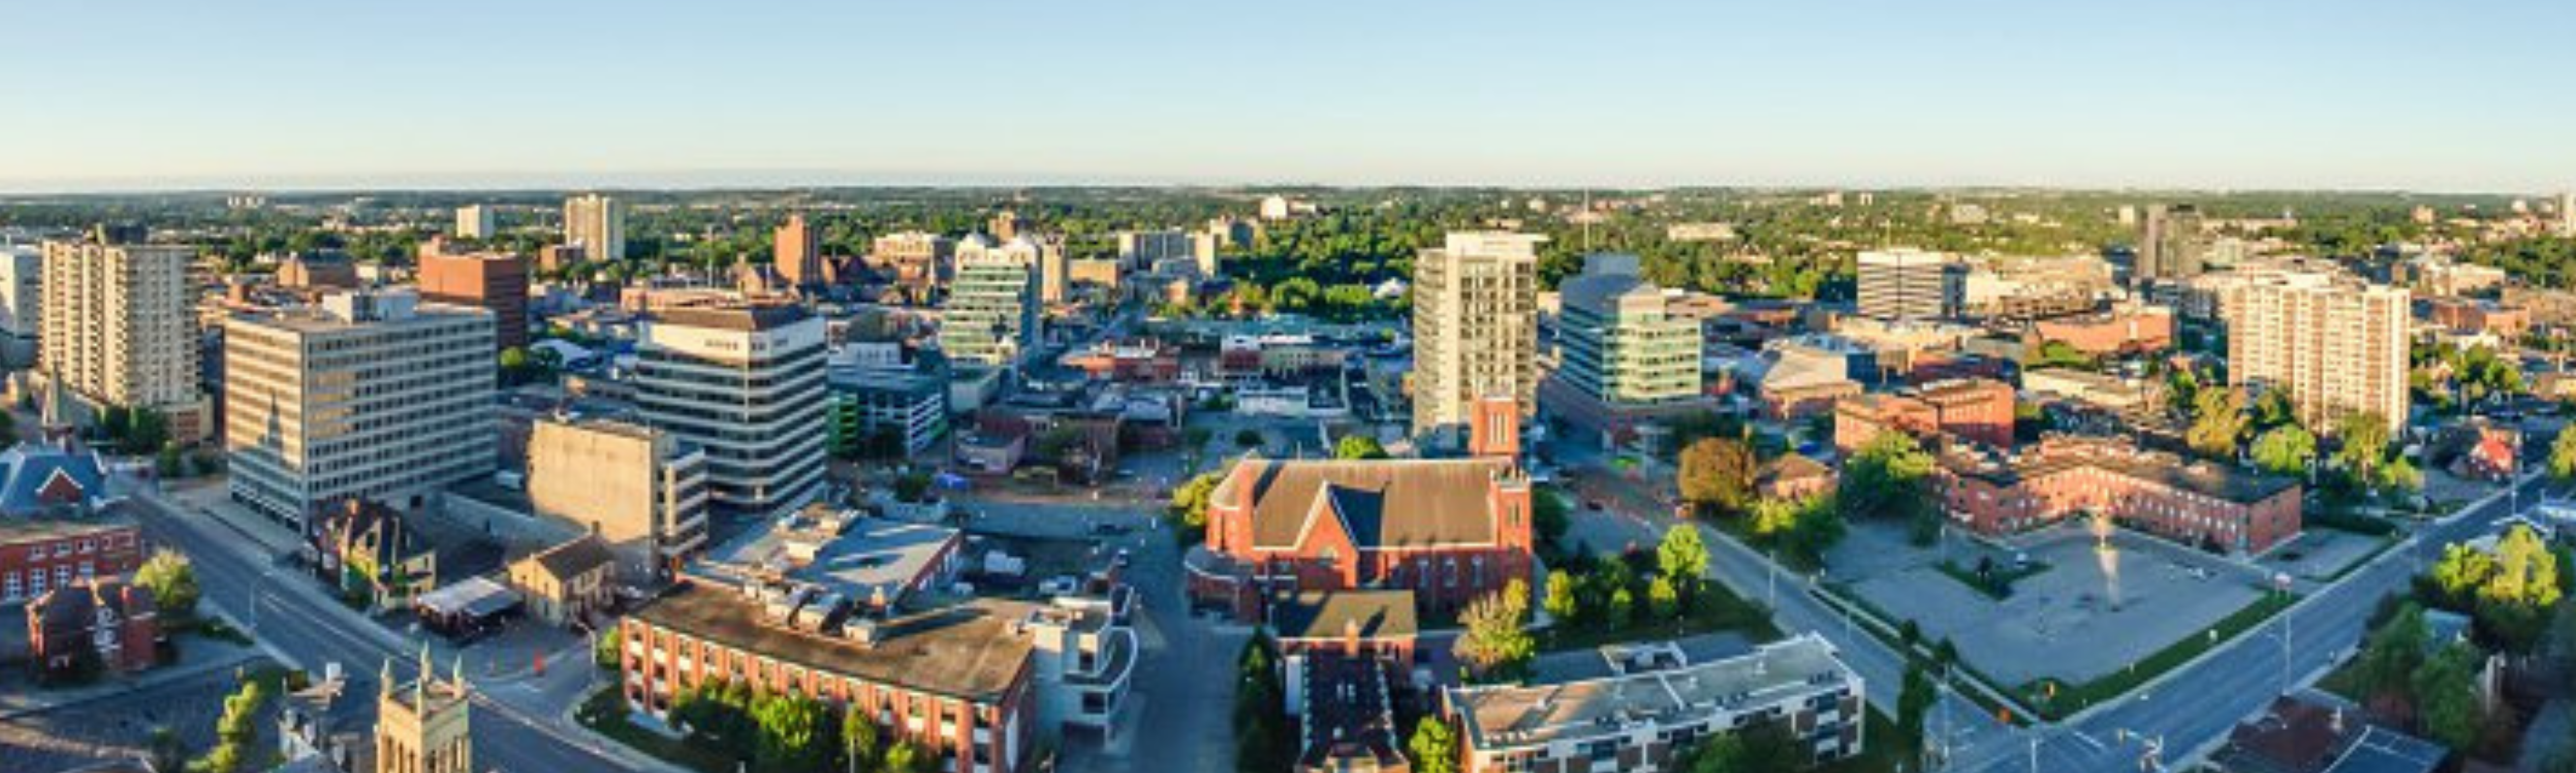 Kitchener-Waterloo Canada skyline